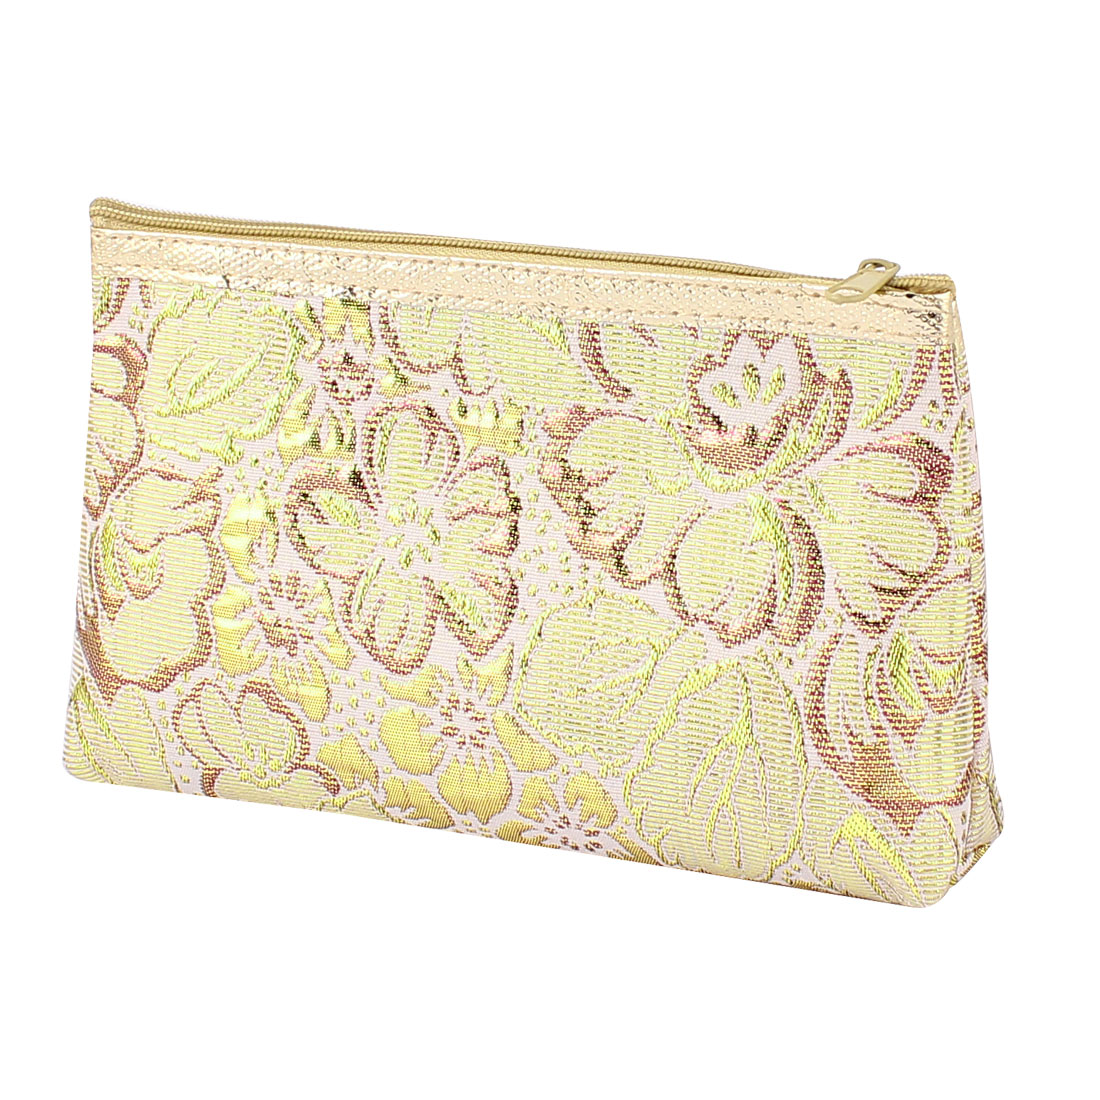 Gold Tone White Embroidery Travel Cosmetic Bag Makeup Case Toiletry Organizer